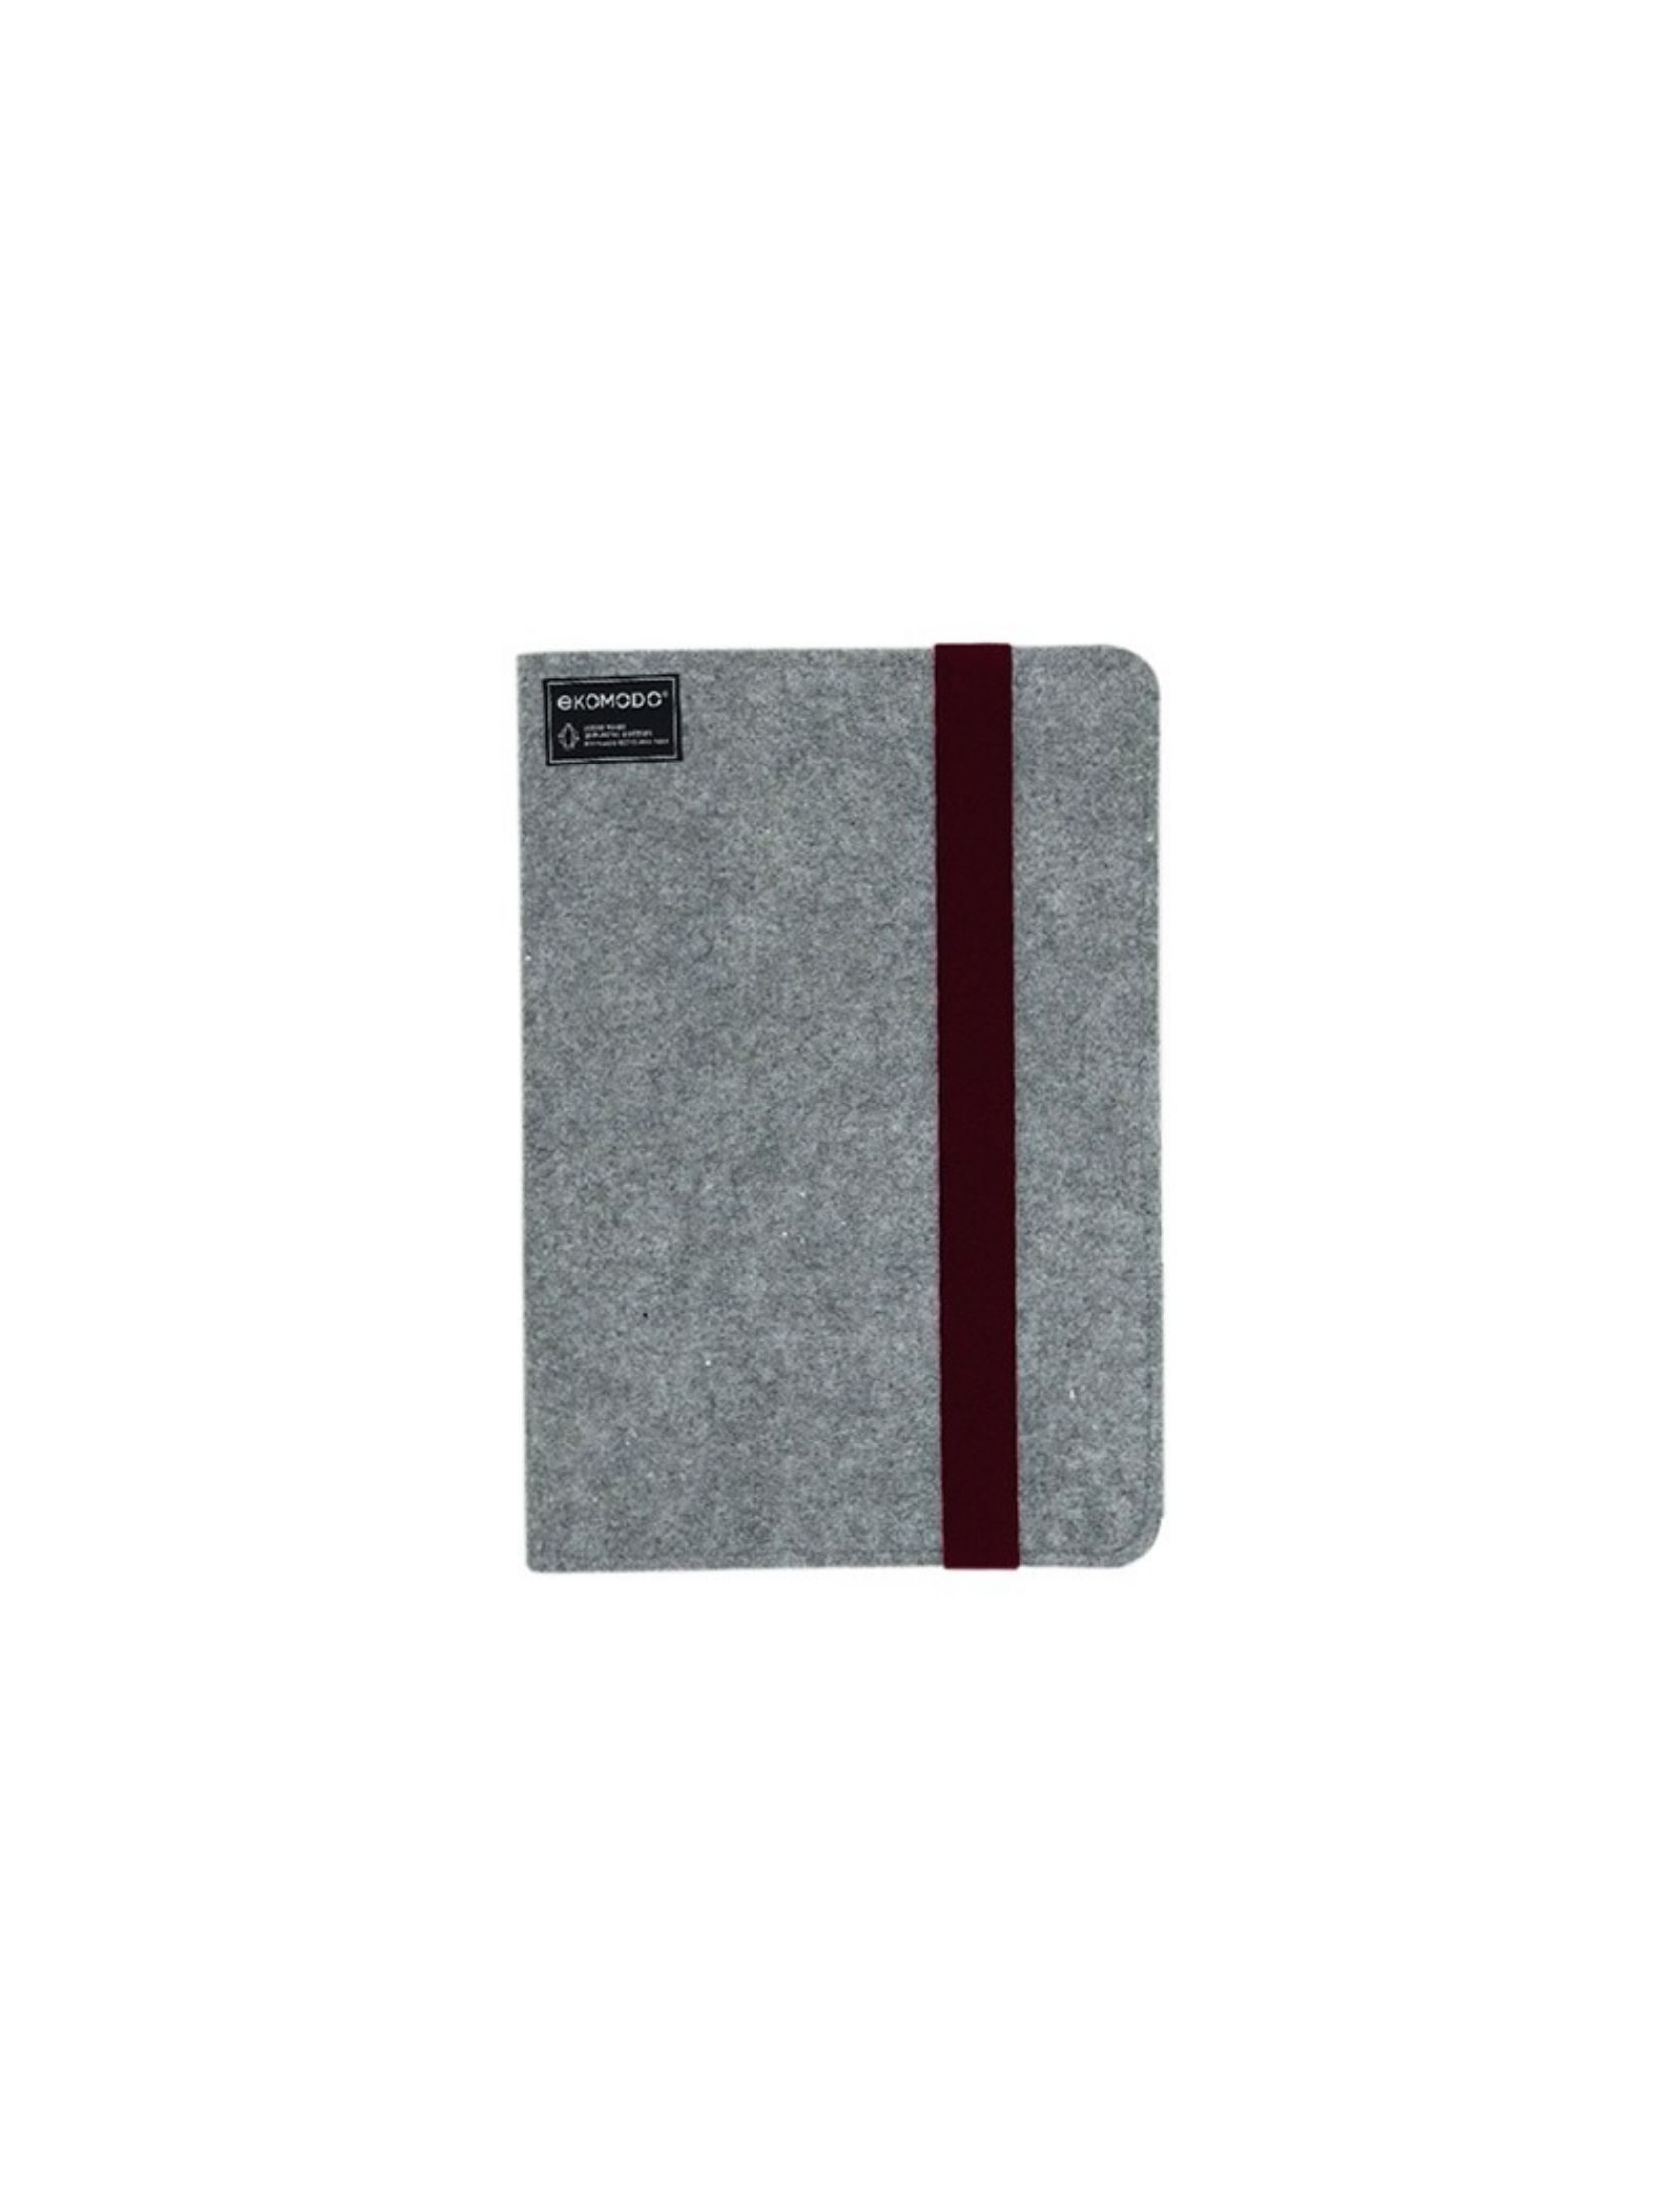 carpeta ofis regular en color gris con fajin de goma granate ideal para documentos o para tablets y portátiles hasta 13""